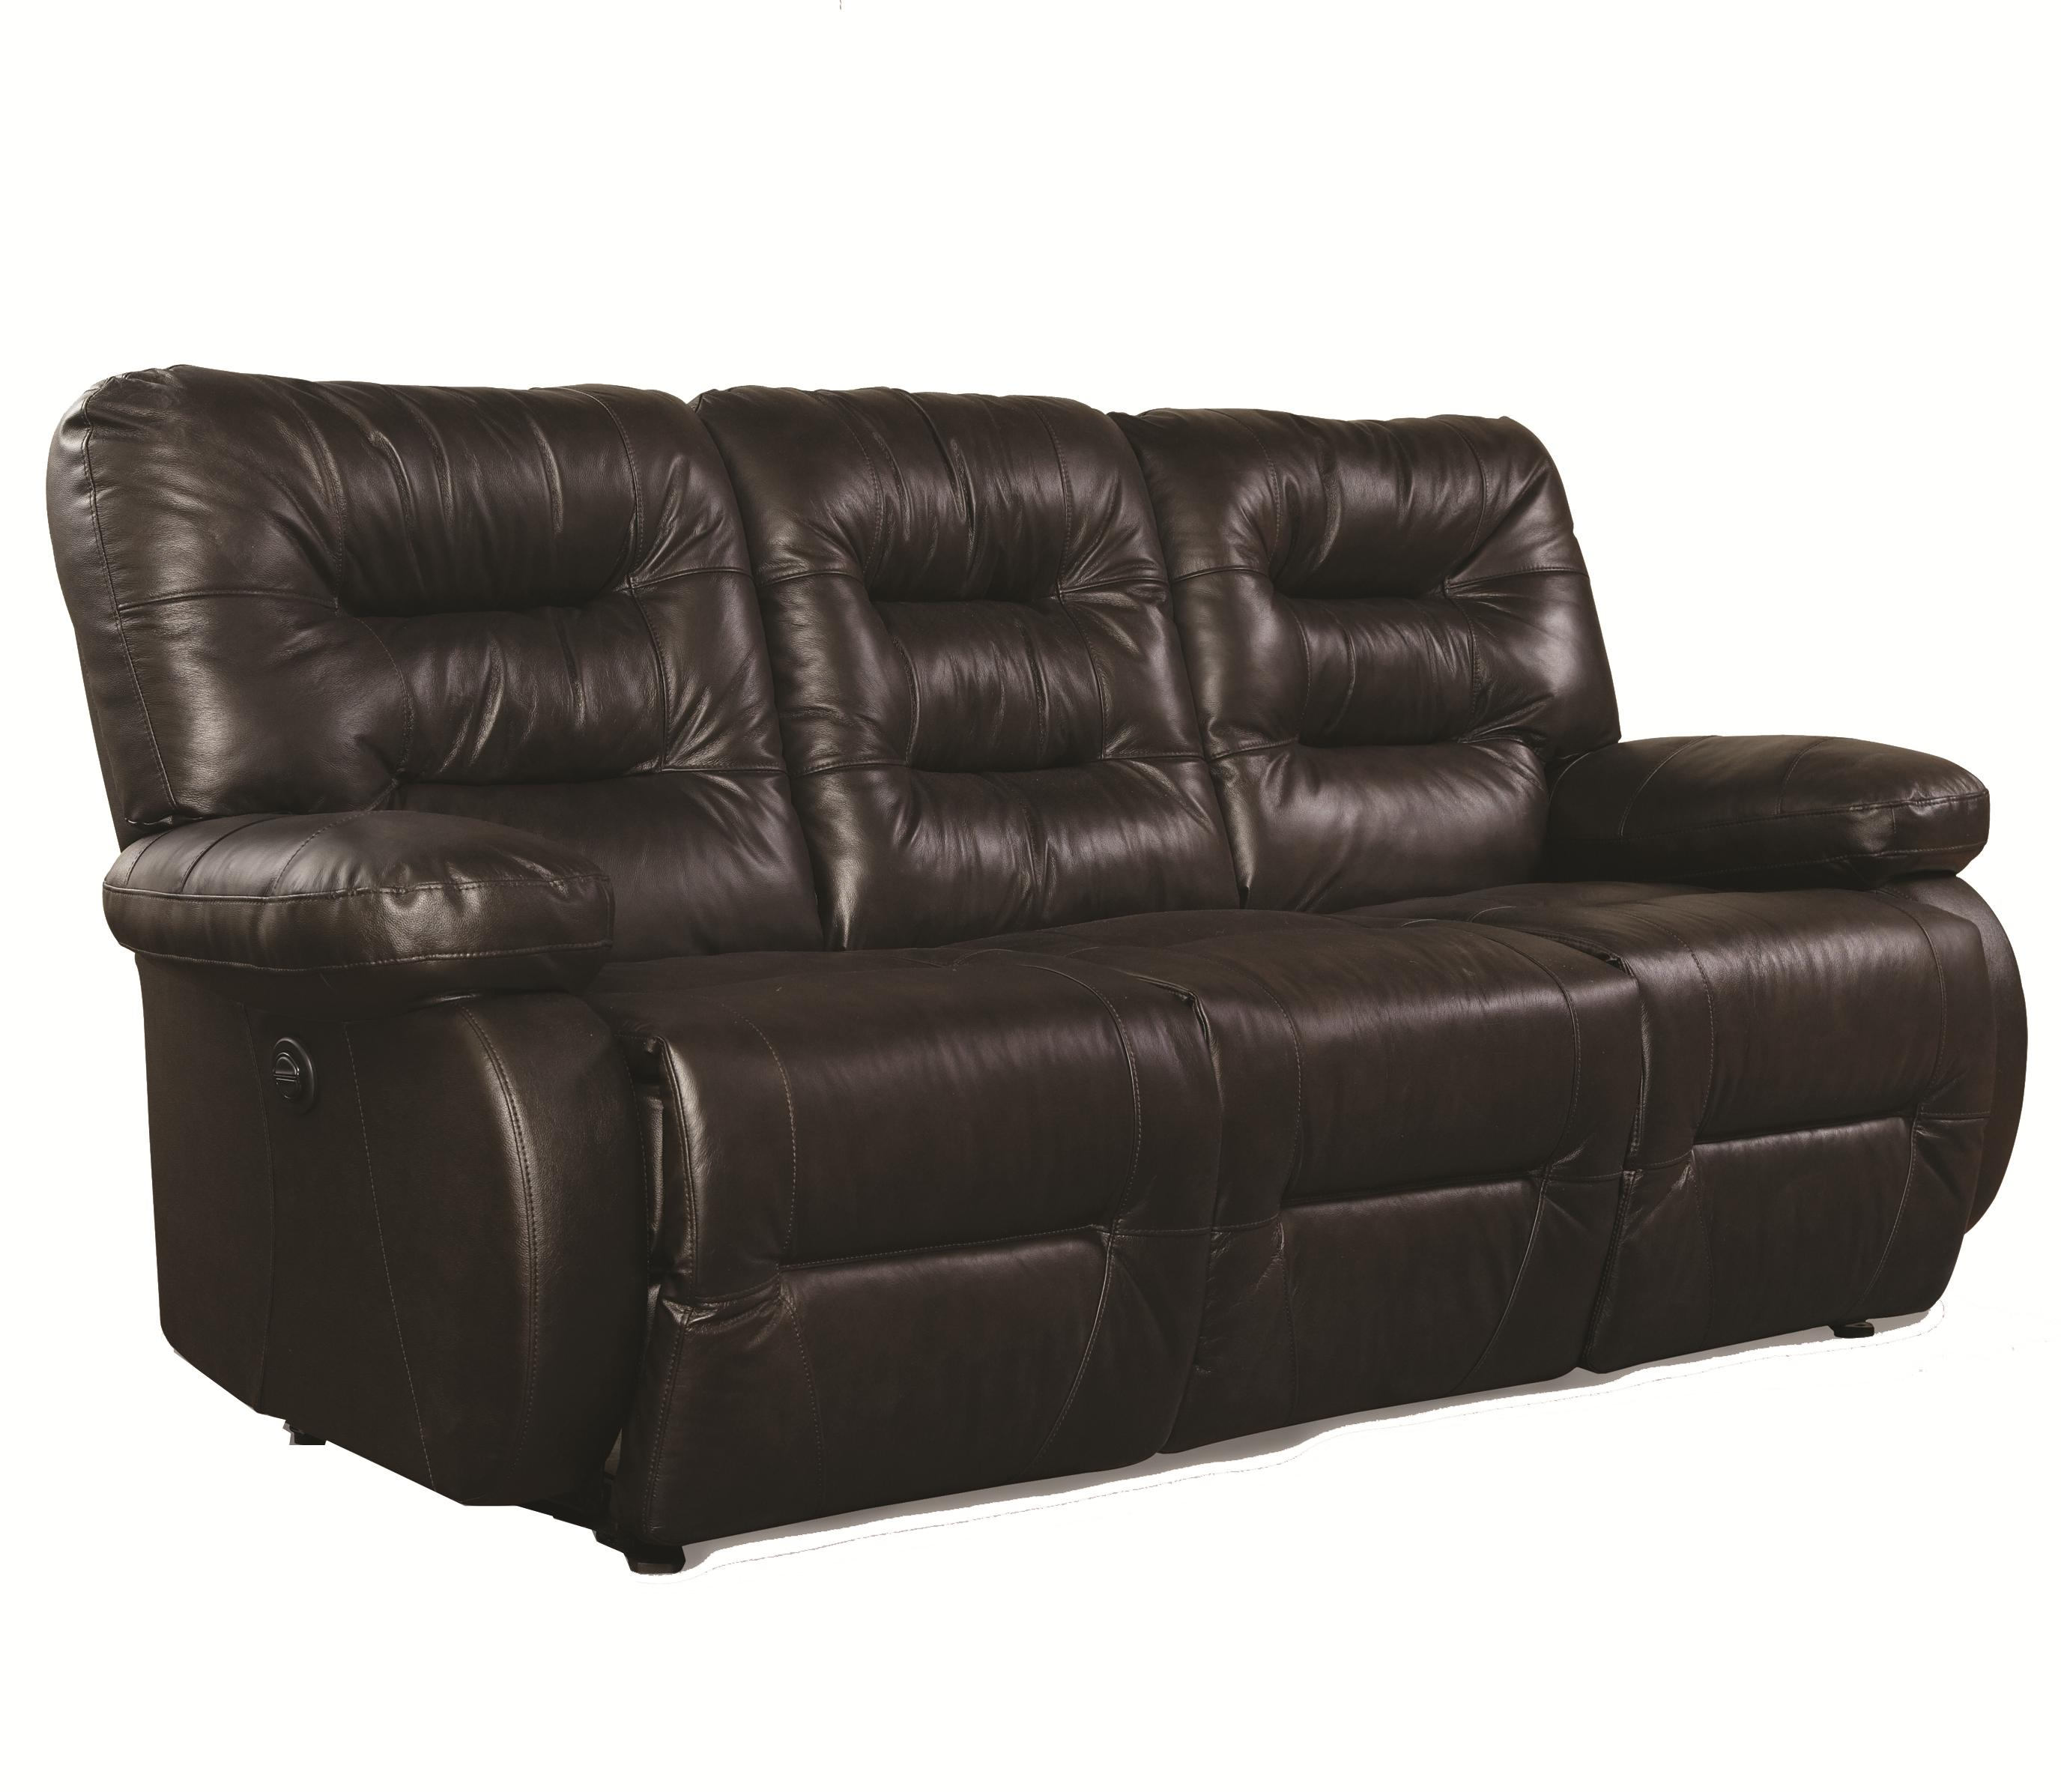 Space saver sofa chaise with pillow arms by best home for Best chaise couch